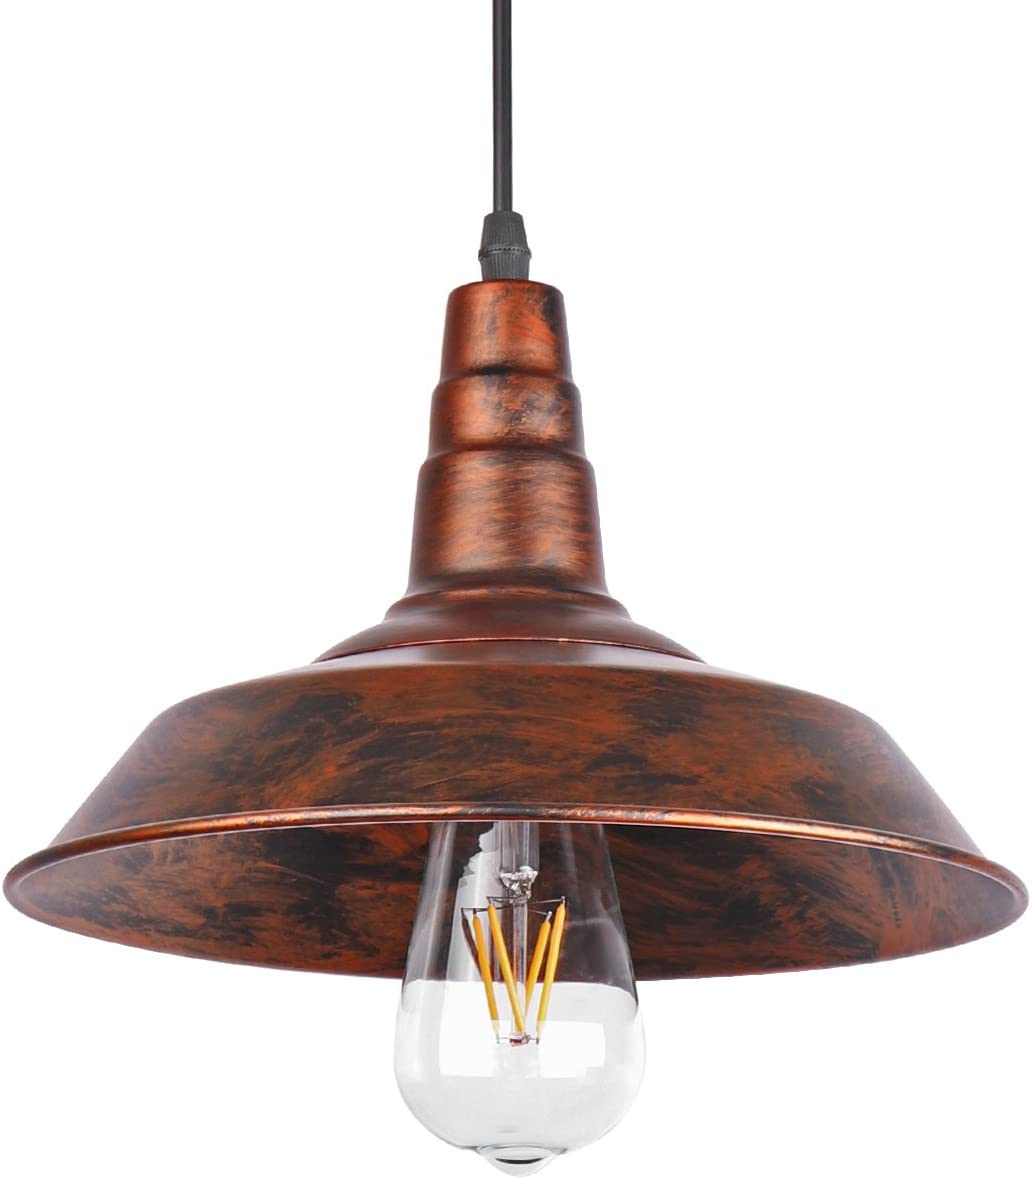 ONEVER Industrial Retro Vintage Loft Wall Coffee Bar Lighting Fixtrure Sconce Pendant Ceiling Lamp Fixtures Light Shades for E27 Edison Bulbs Brown, bulb is not included